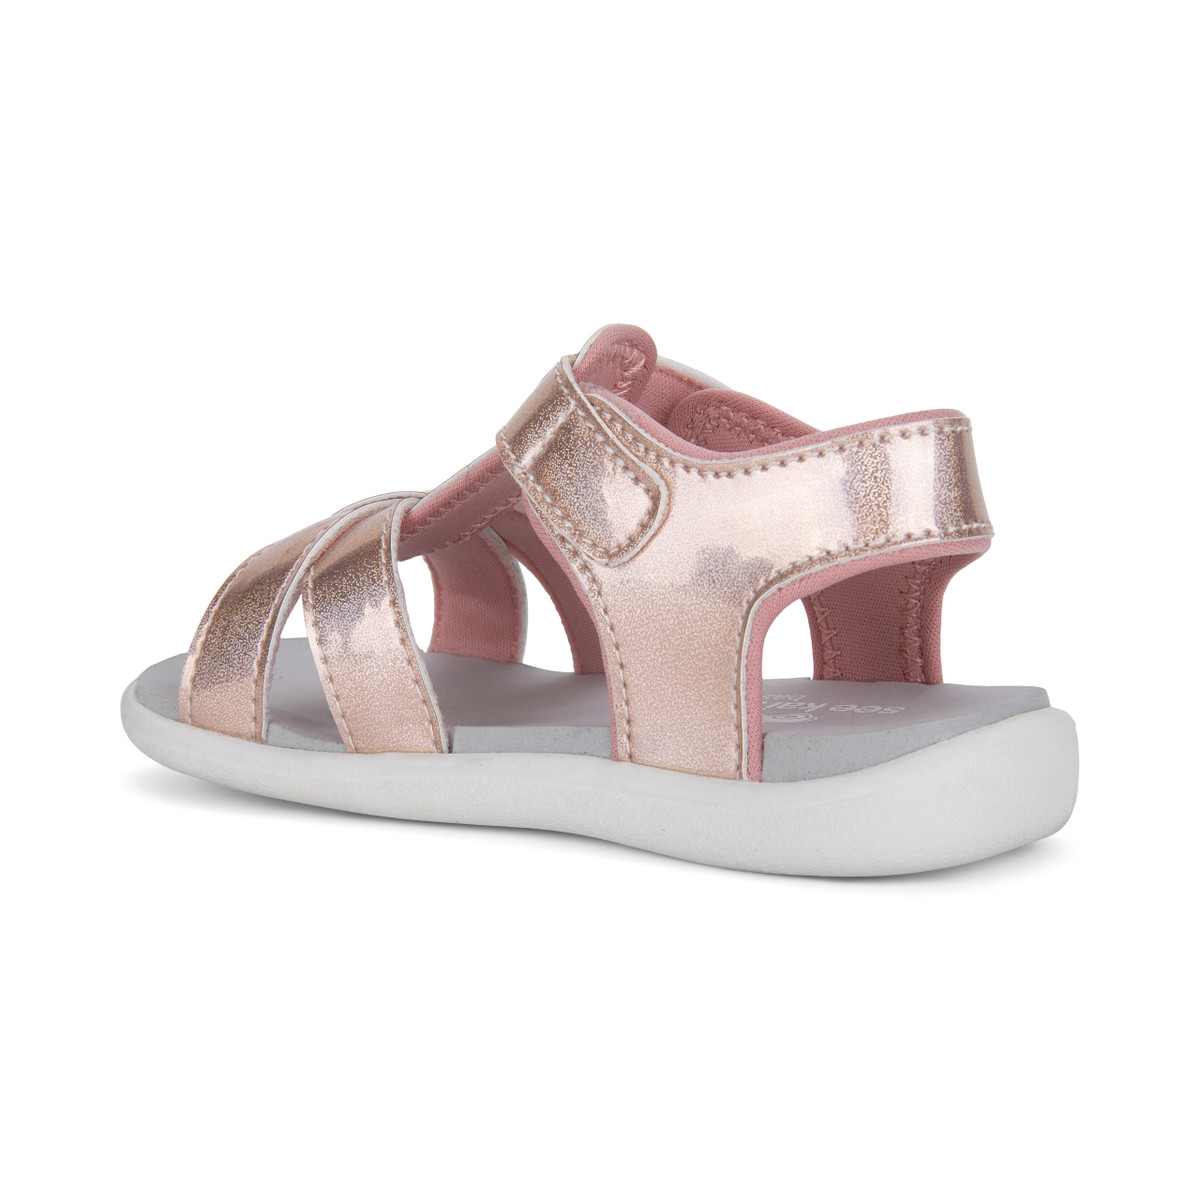 Back Left Side view of the Shayna Rose Iridescent sandal